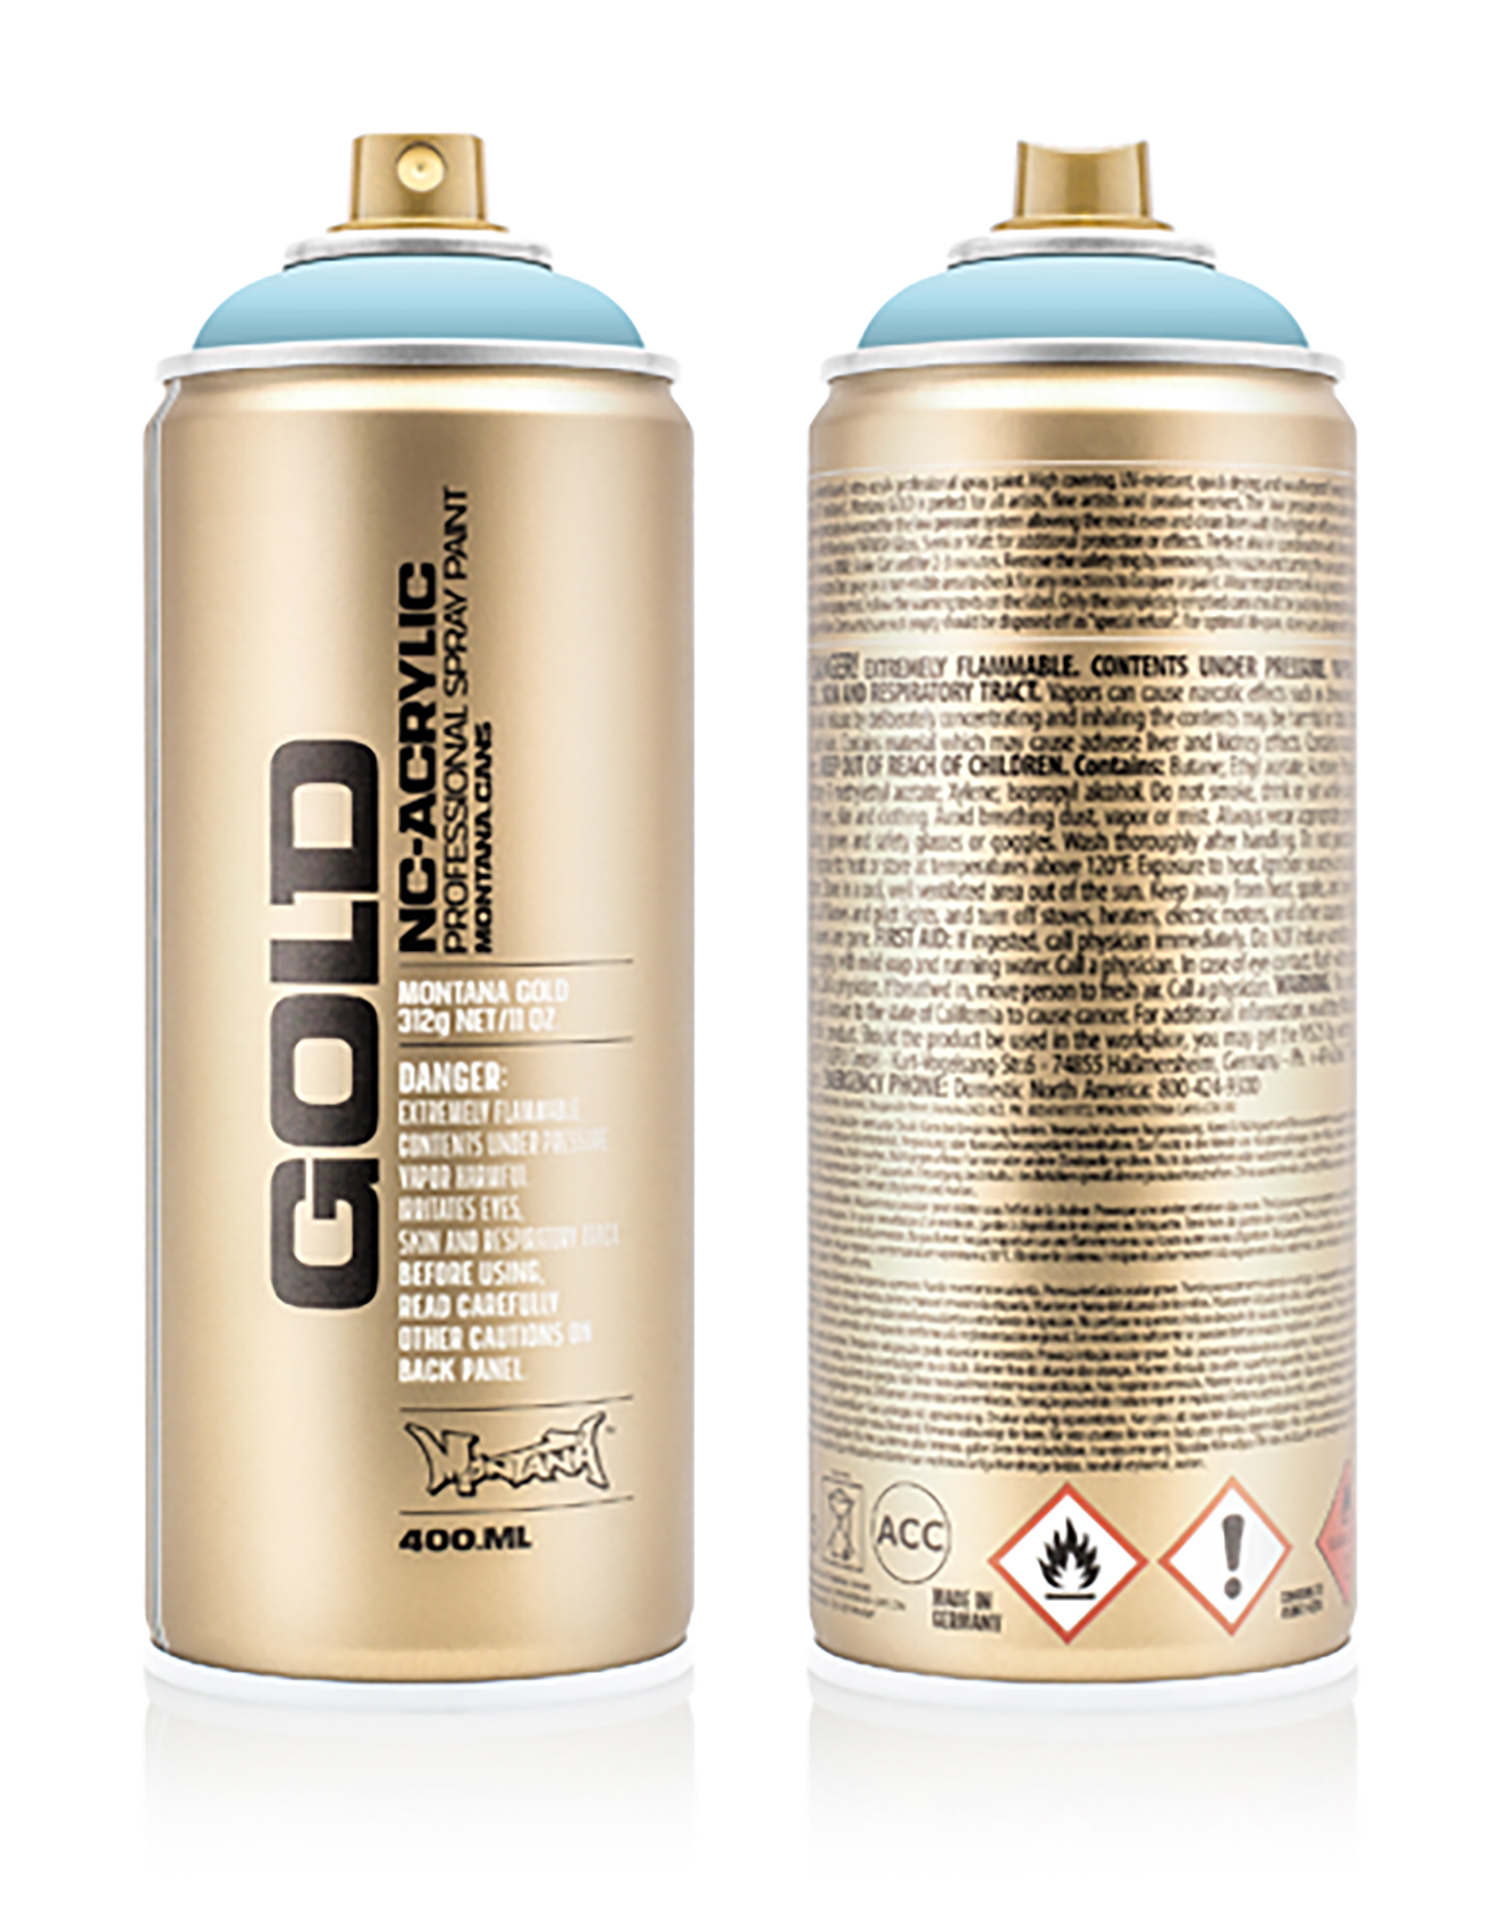 MONTANA-GOLD-SPRAY-400ML-G-5010